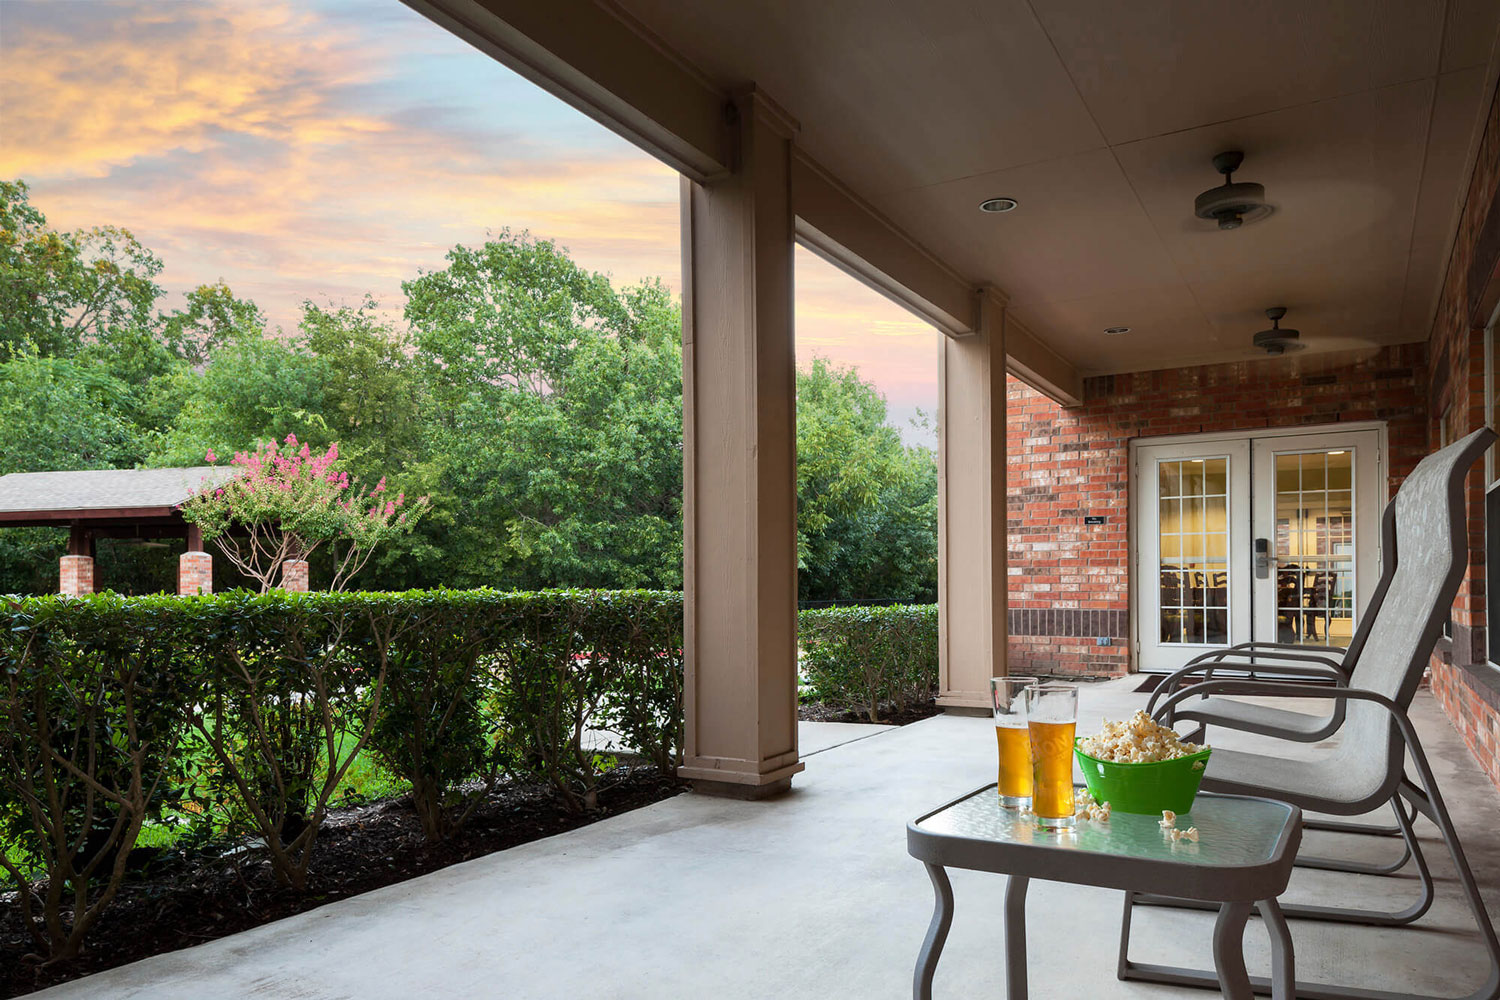 Relaxed Apartment Living at Champions Cove Apartments in Duncanville, TX